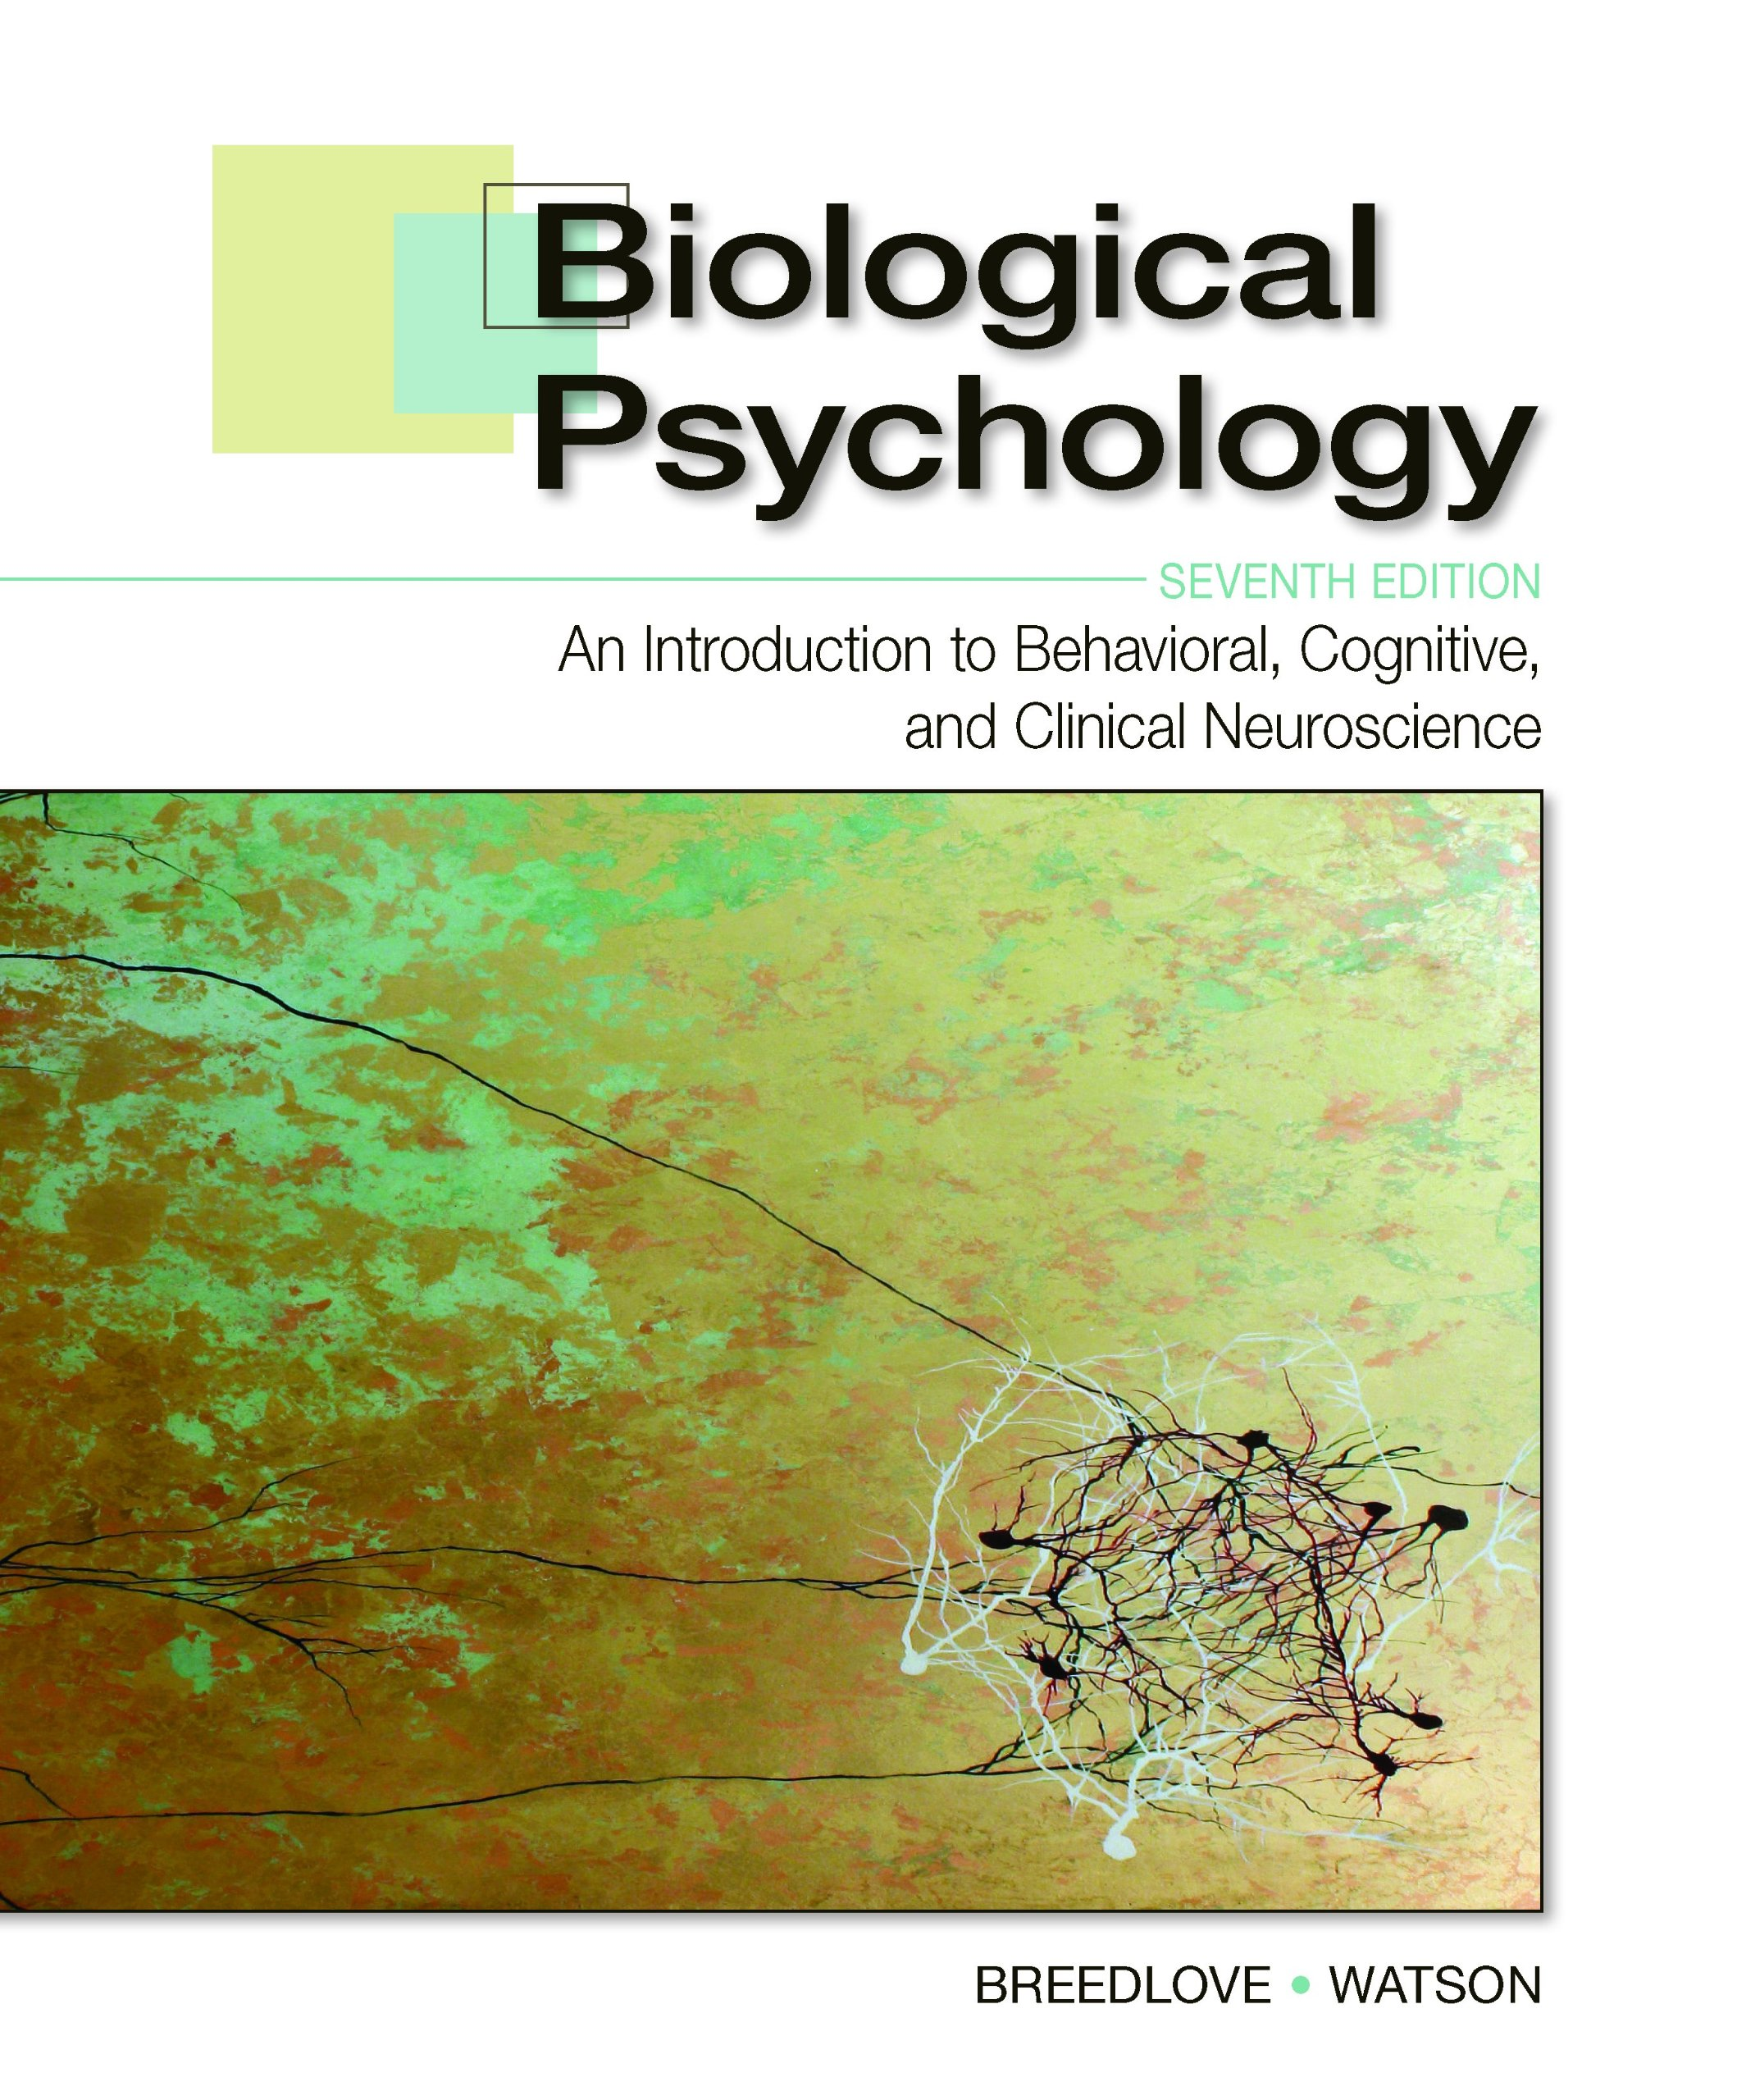 Biological Psychology: An Introduction to Behavioral, Cognitive, and  Clinical Neuroscience Loose Leaf – Mar 14 2013